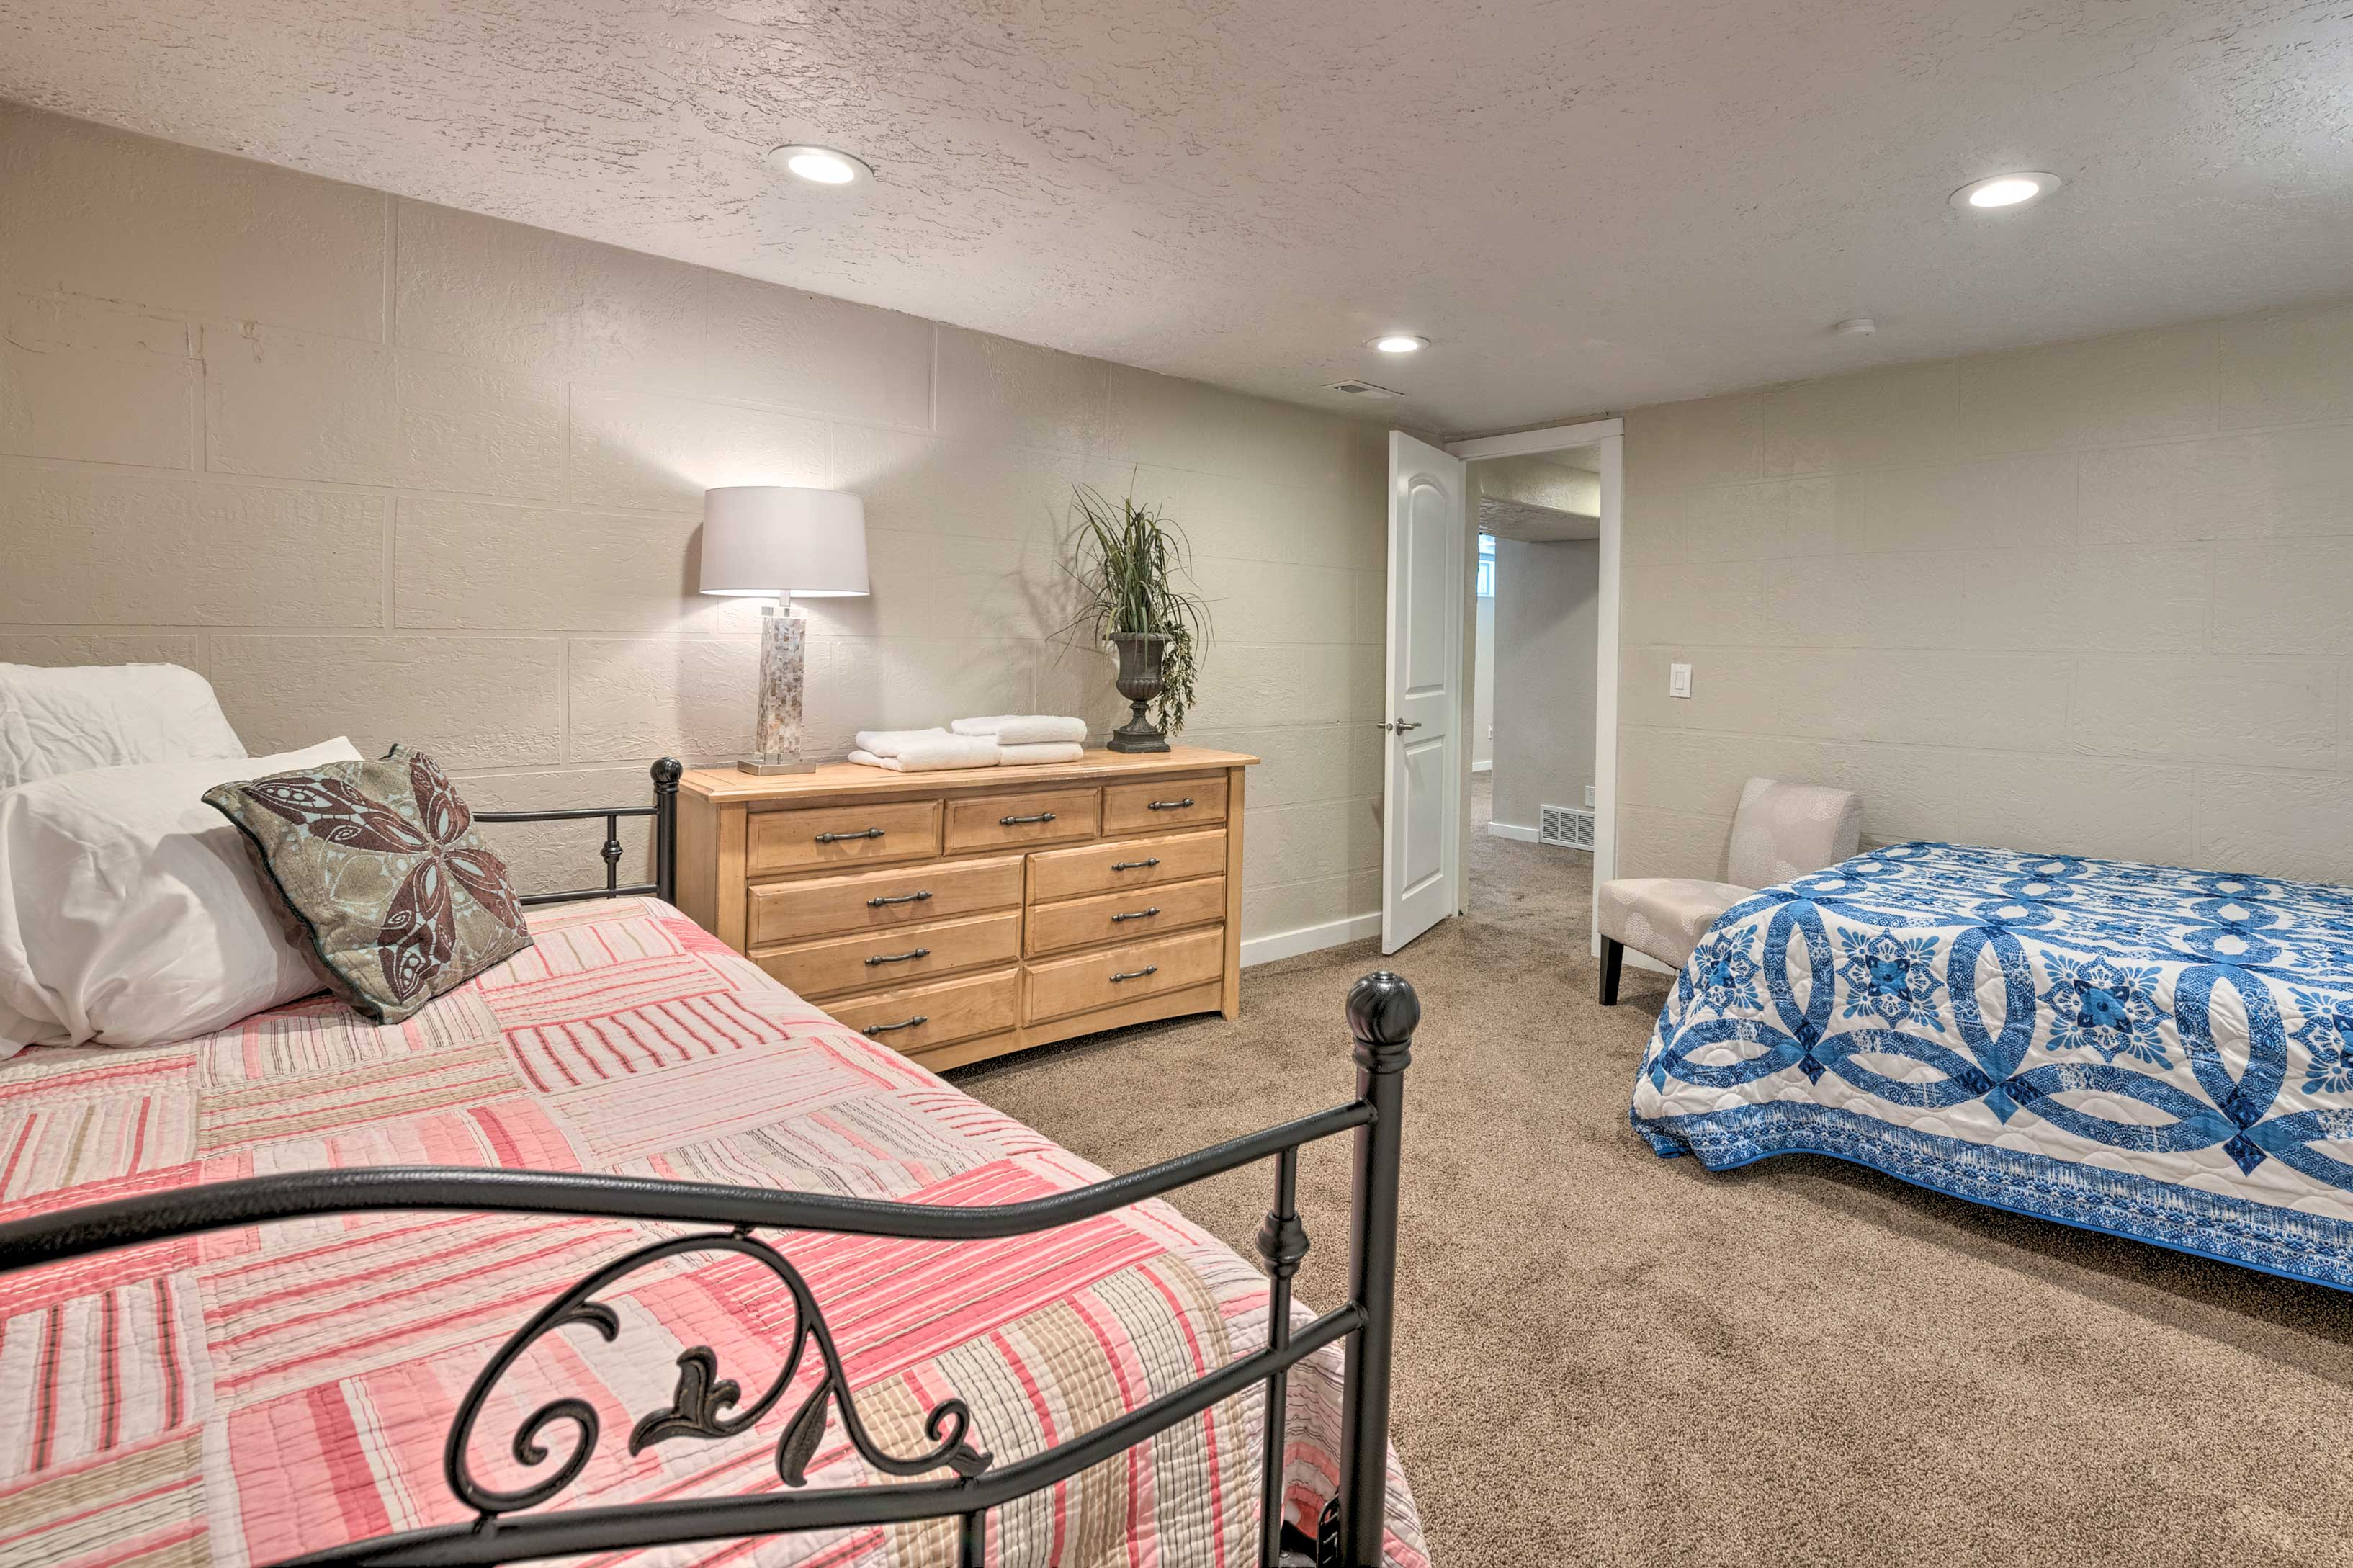 With a full bed, twin bed, and twin trundle bed, this room can sleep 4.